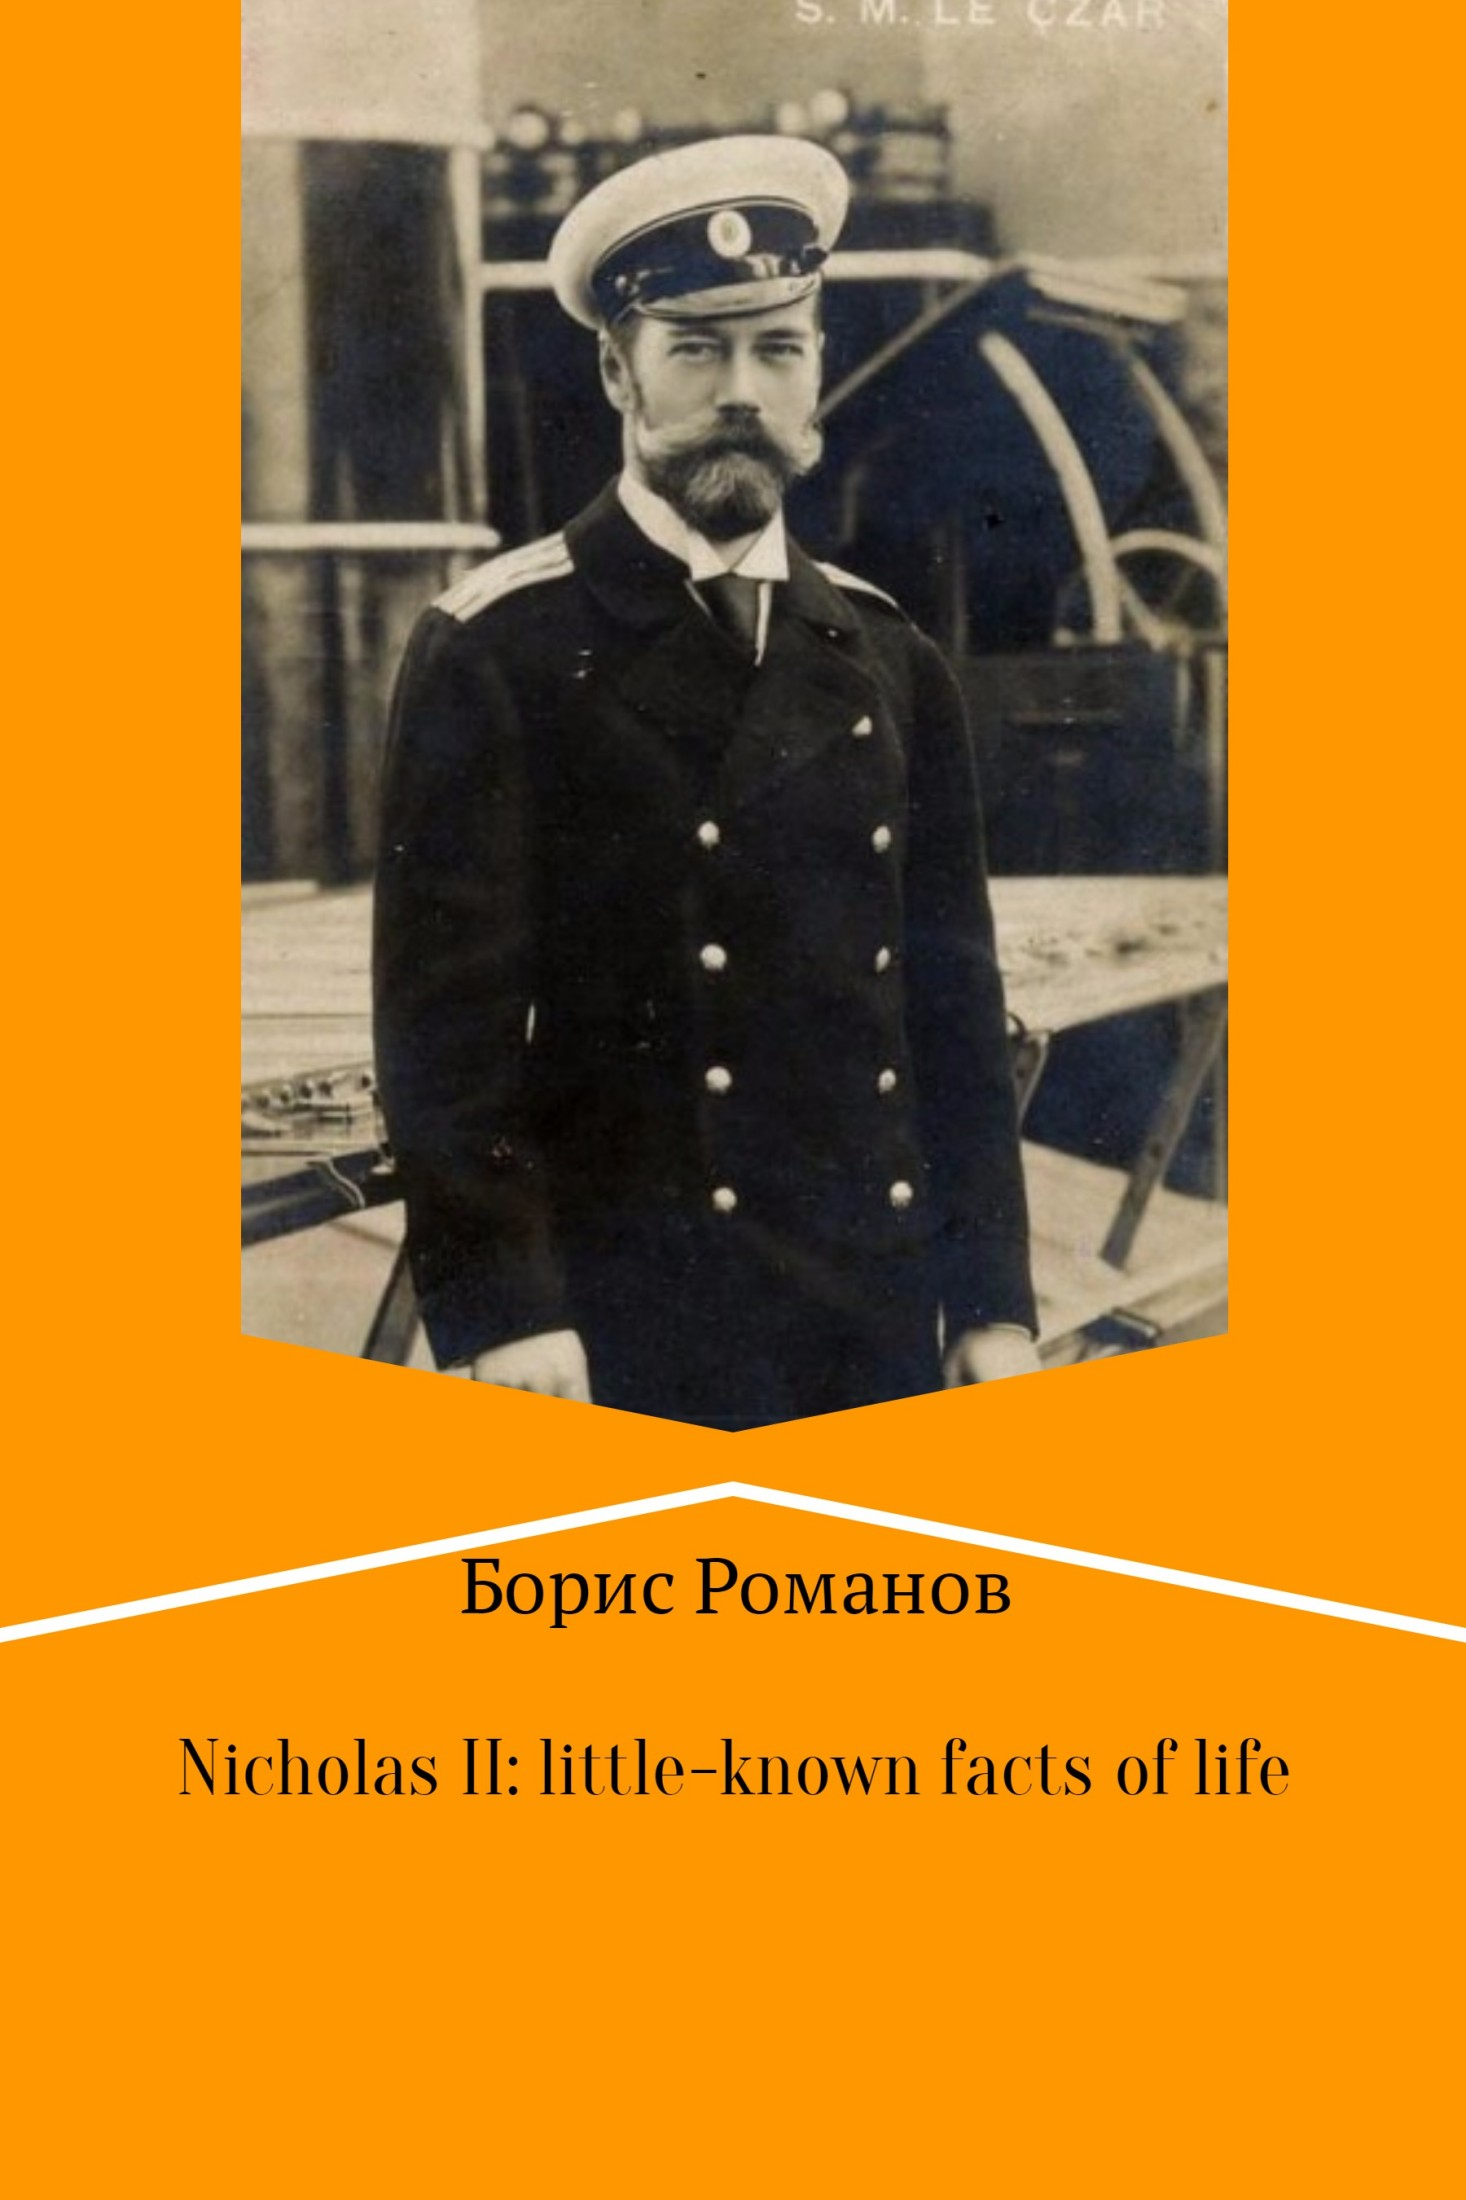 обложка книги Nicholas II of Russia: little-known facts of life